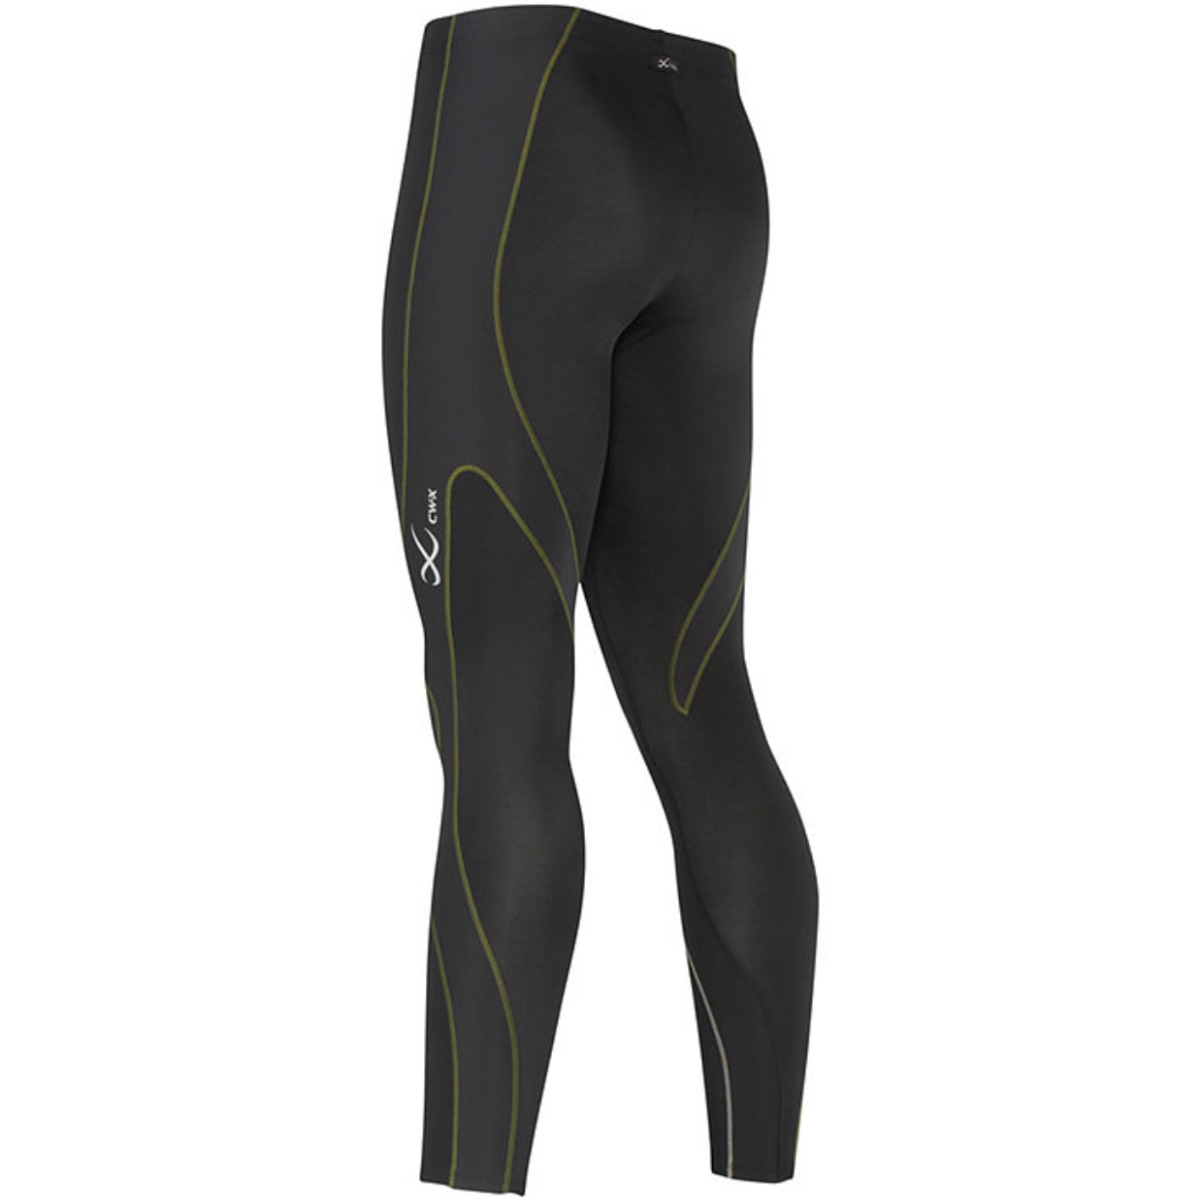 Cw-x Sports Compression Male3